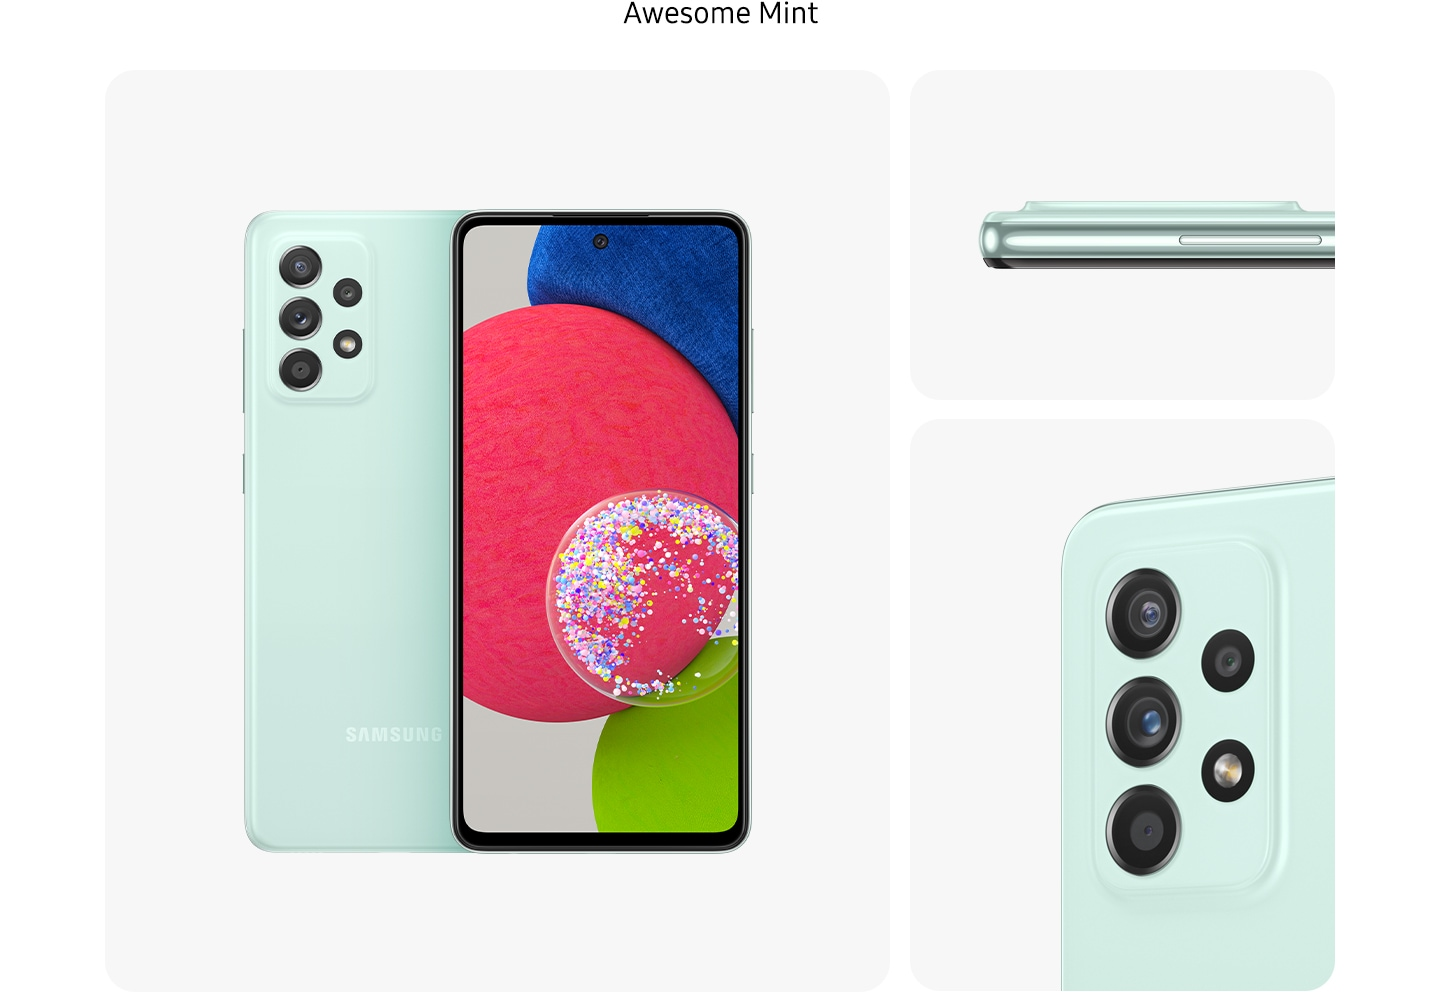 4. MintGalaxy A52s 5G in Awesome Mint, seen from multiple angles to show the design: rear, front, side and close-up on the rear camera.